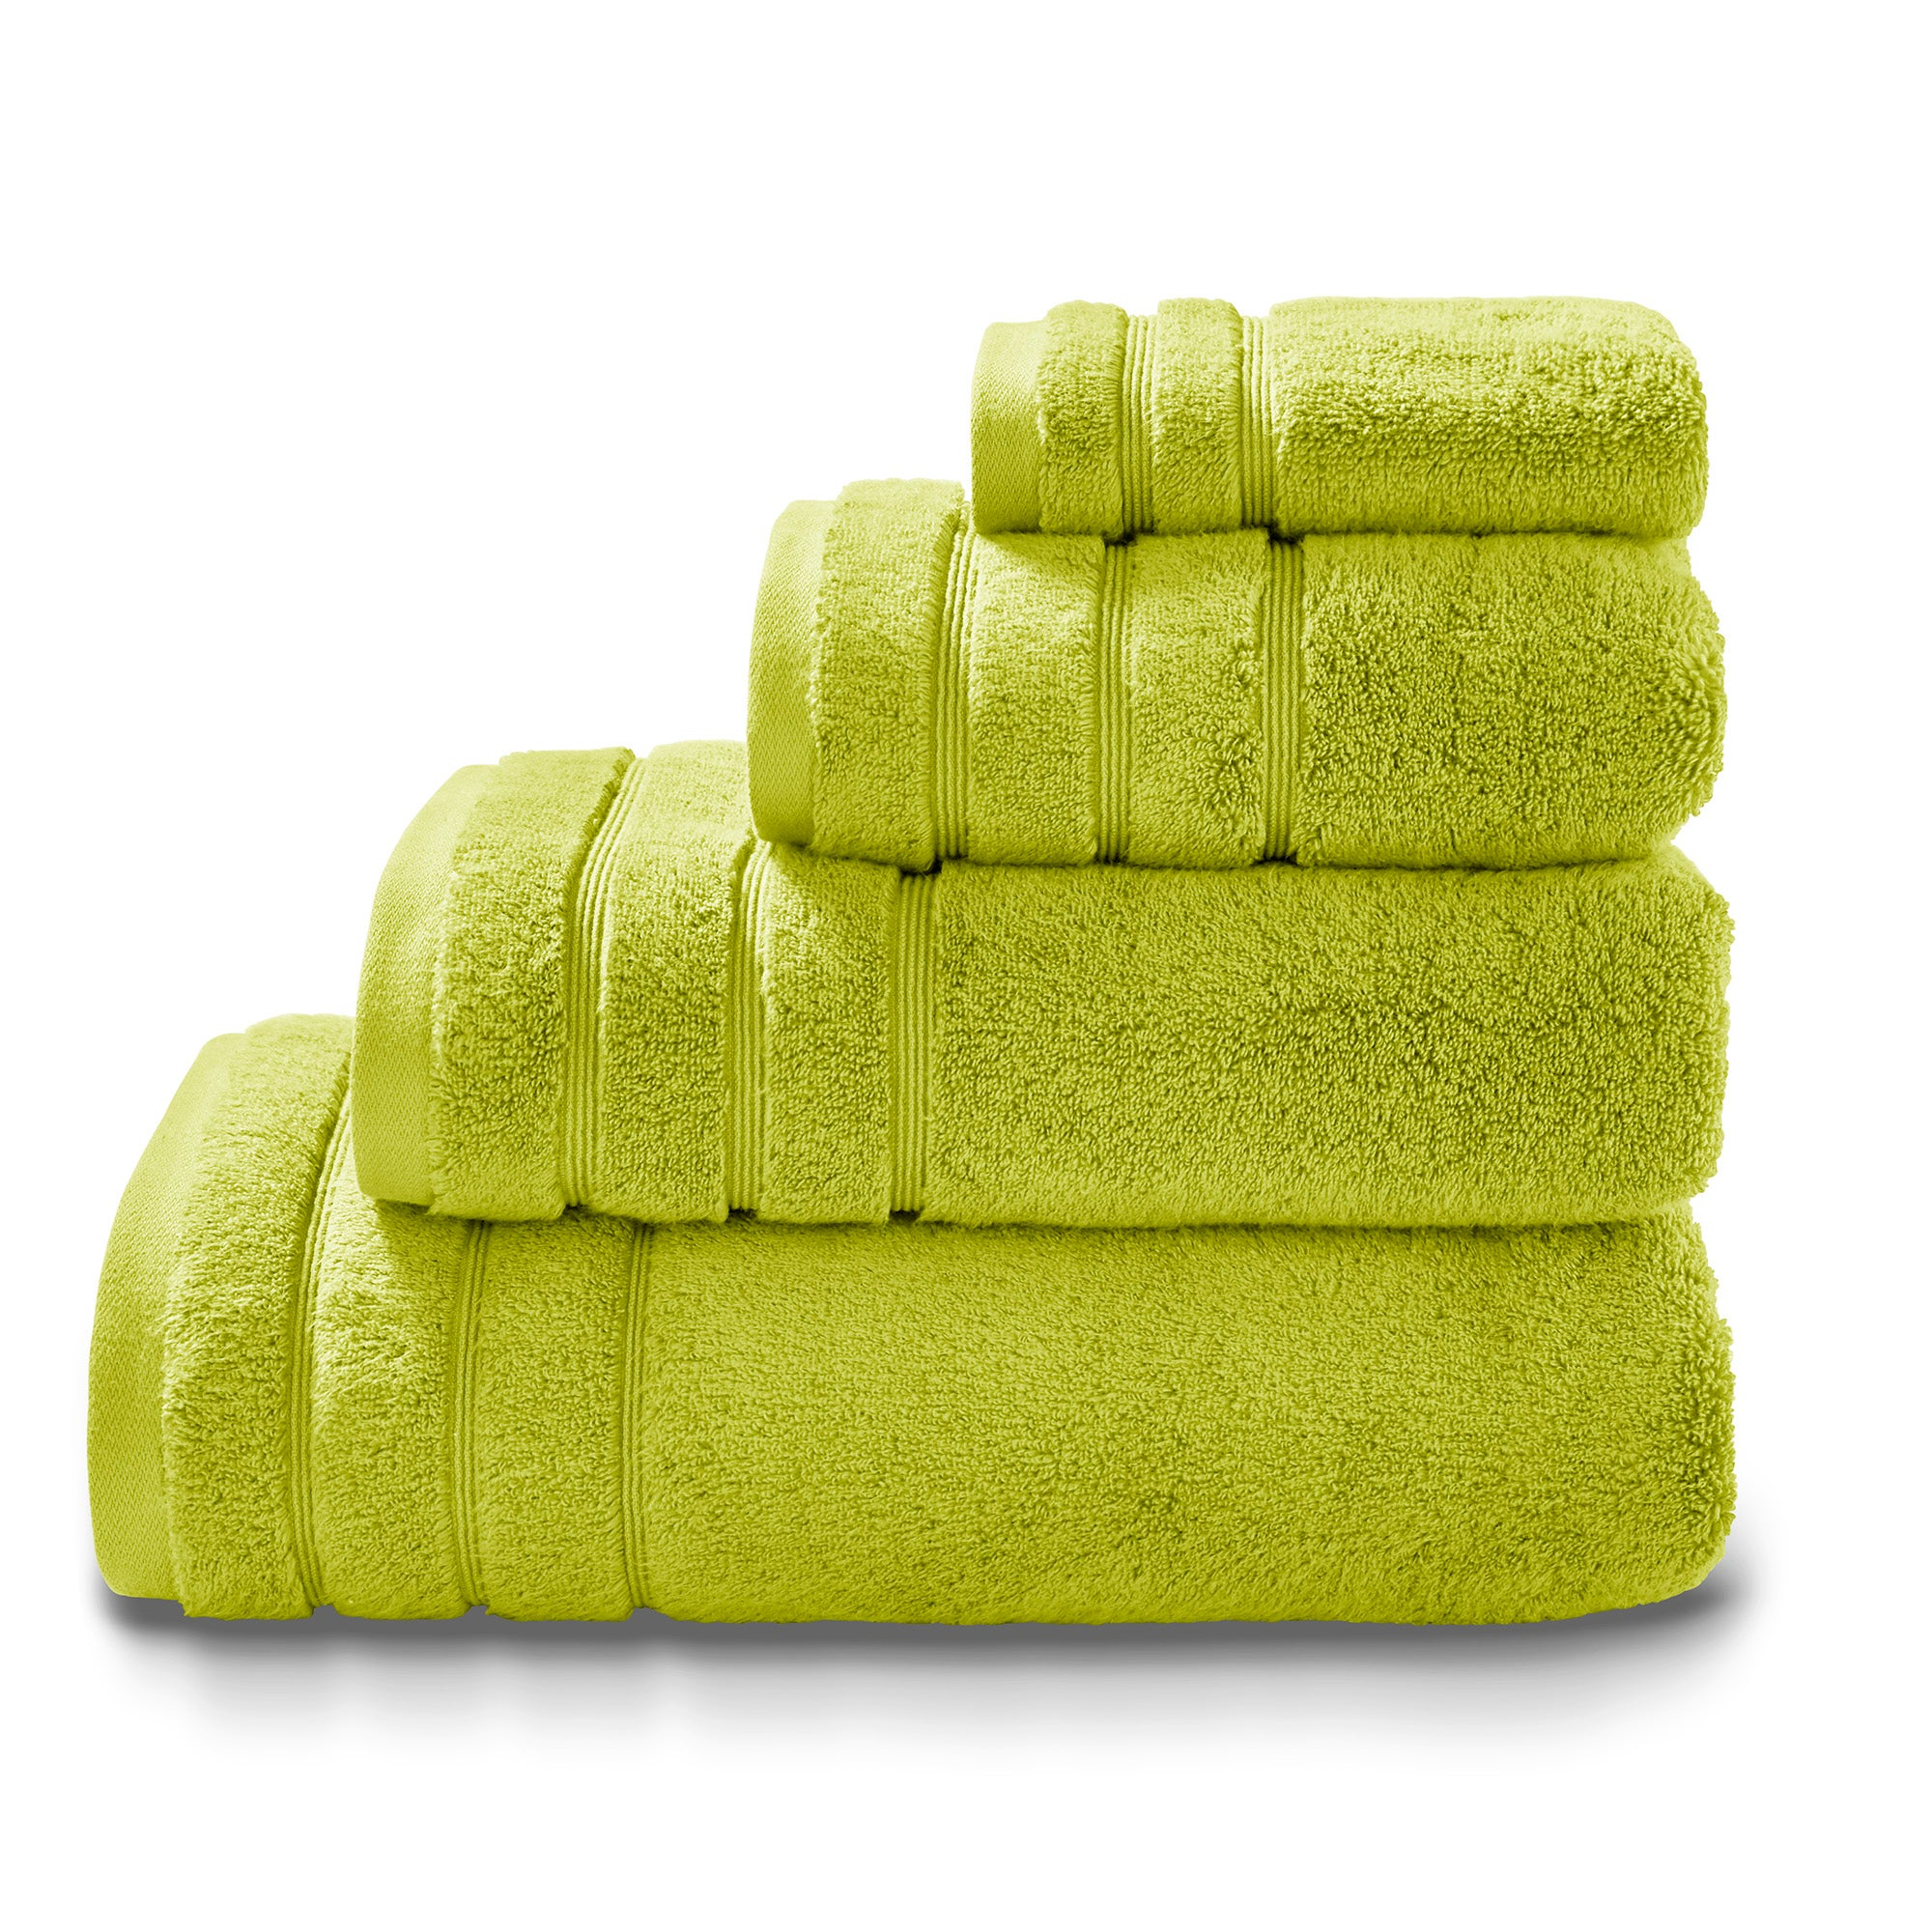 Photo of Lime ultimate towel ultimate bright lime